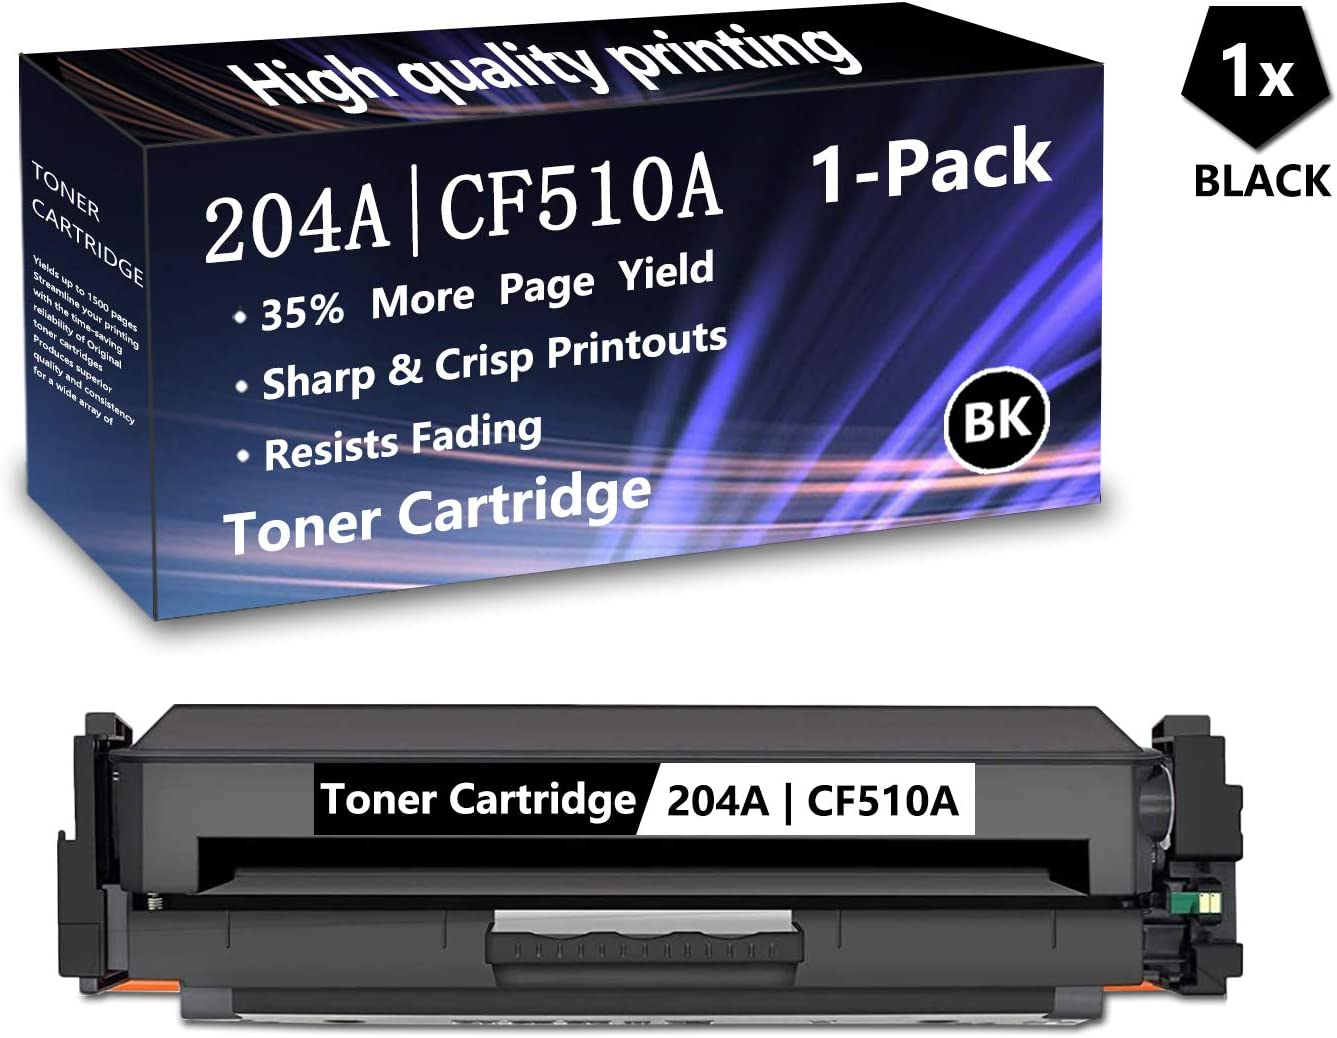 1 Pack Black 204A CF510A for H Cartridge Replacement Elegant Max 50% OFF Toner